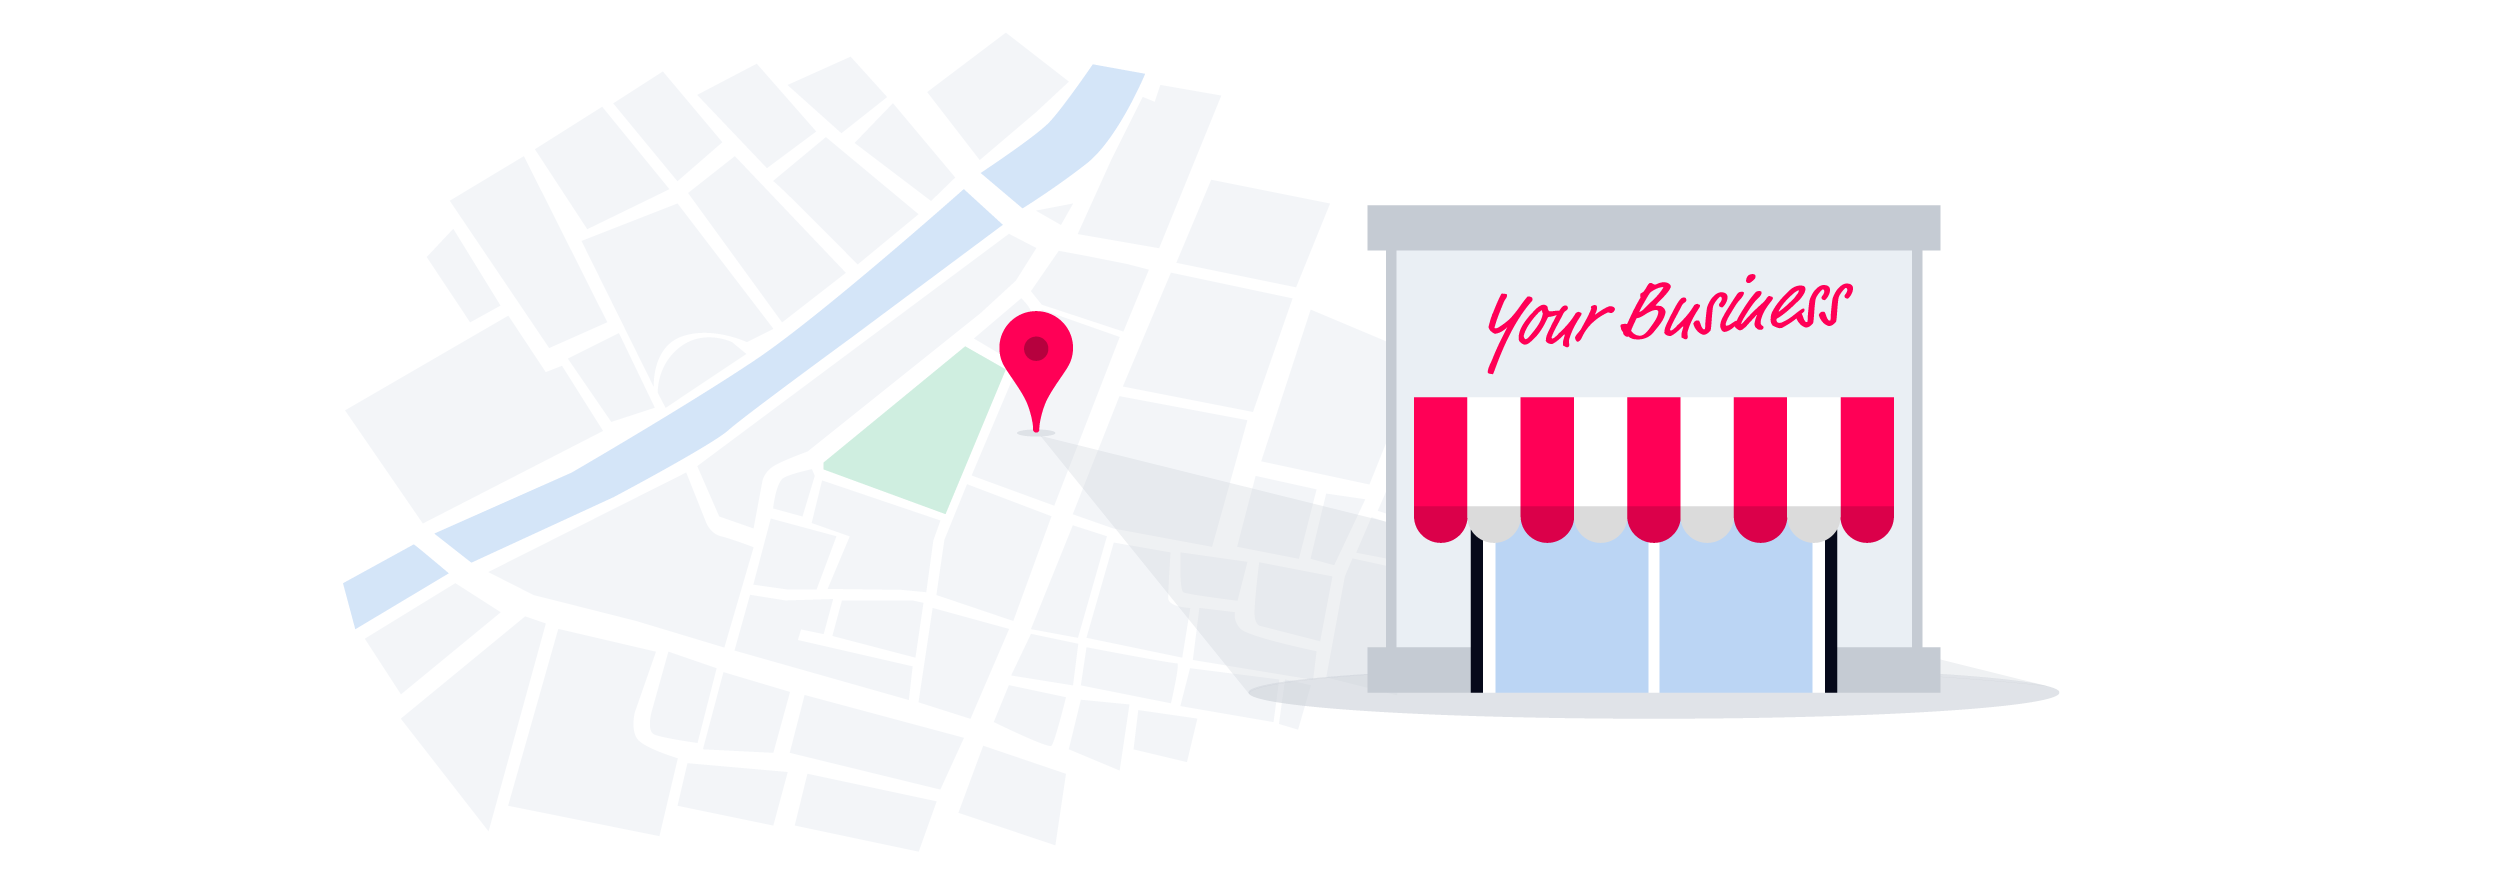 Local SEO: How to Rank Your Business in Google Maps and Search